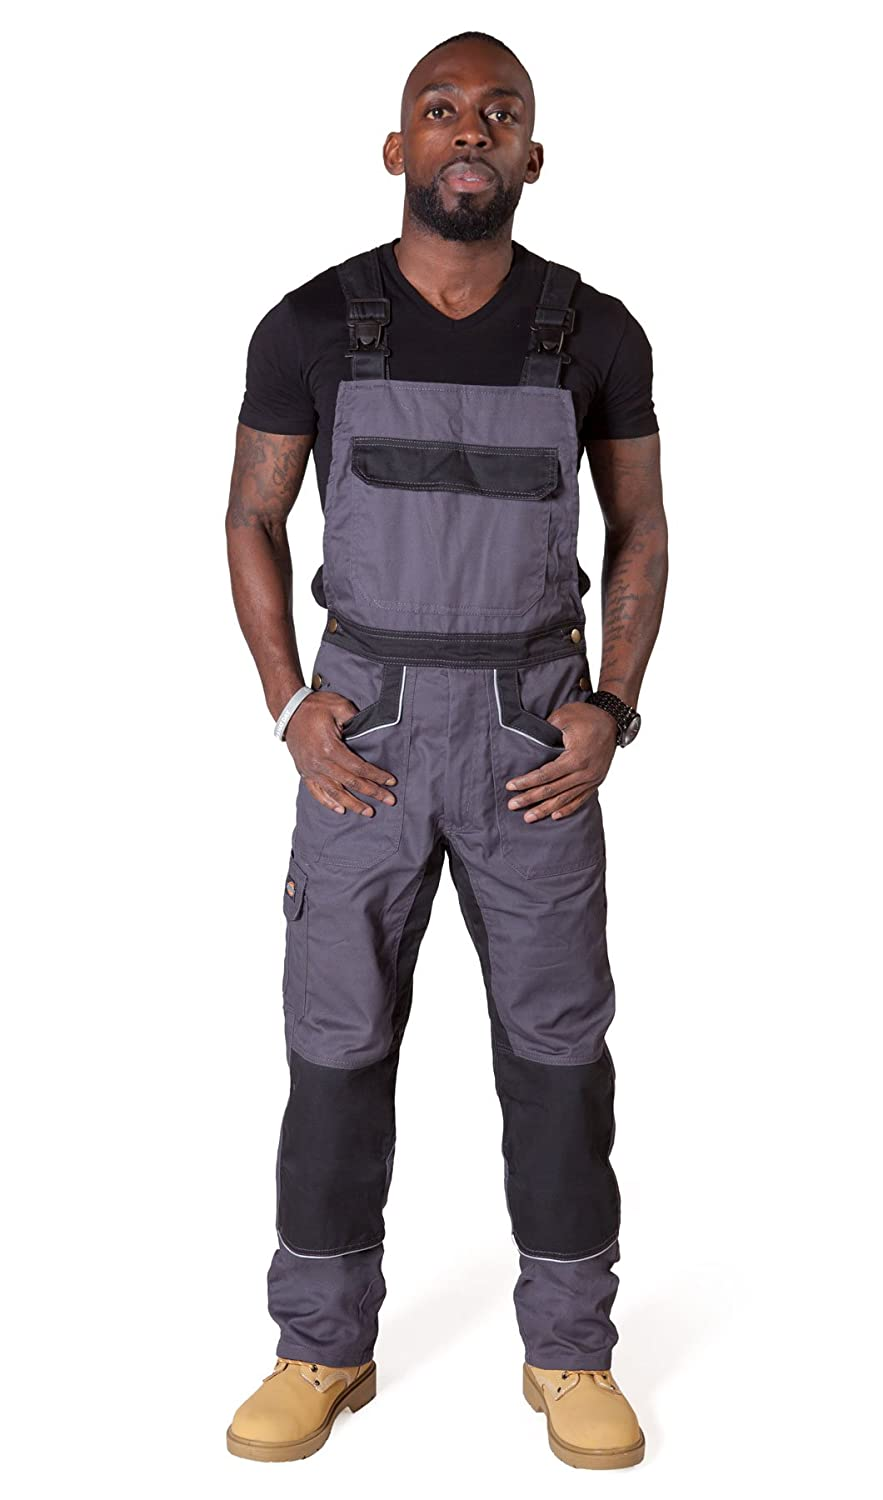 Dickies - Bib and Brace Overalls - Grey / Black